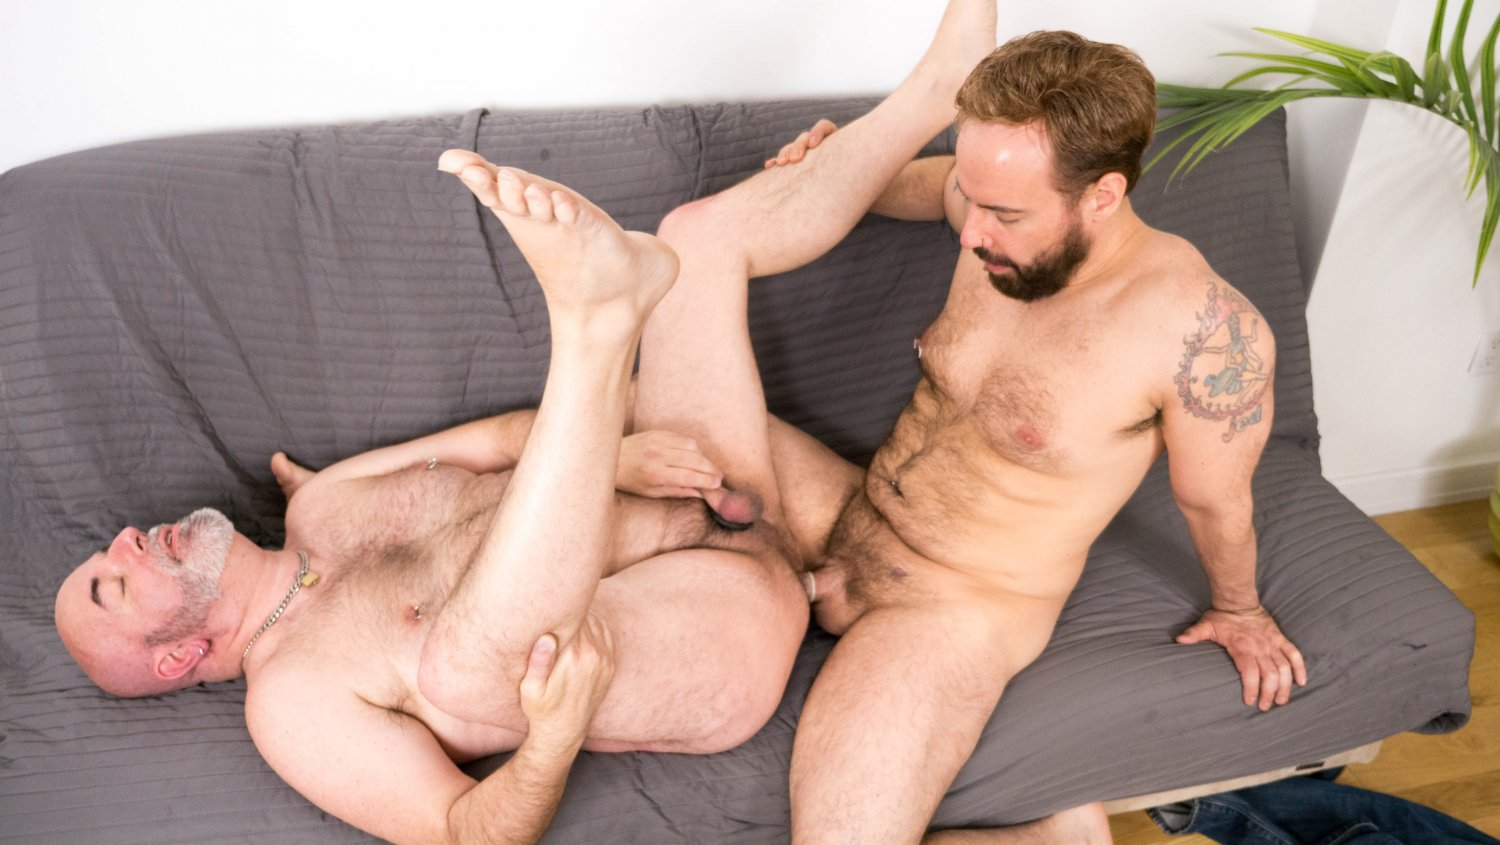 Sam Black and Rob Foster - BearFilms Mature amateur wife mmf threesome